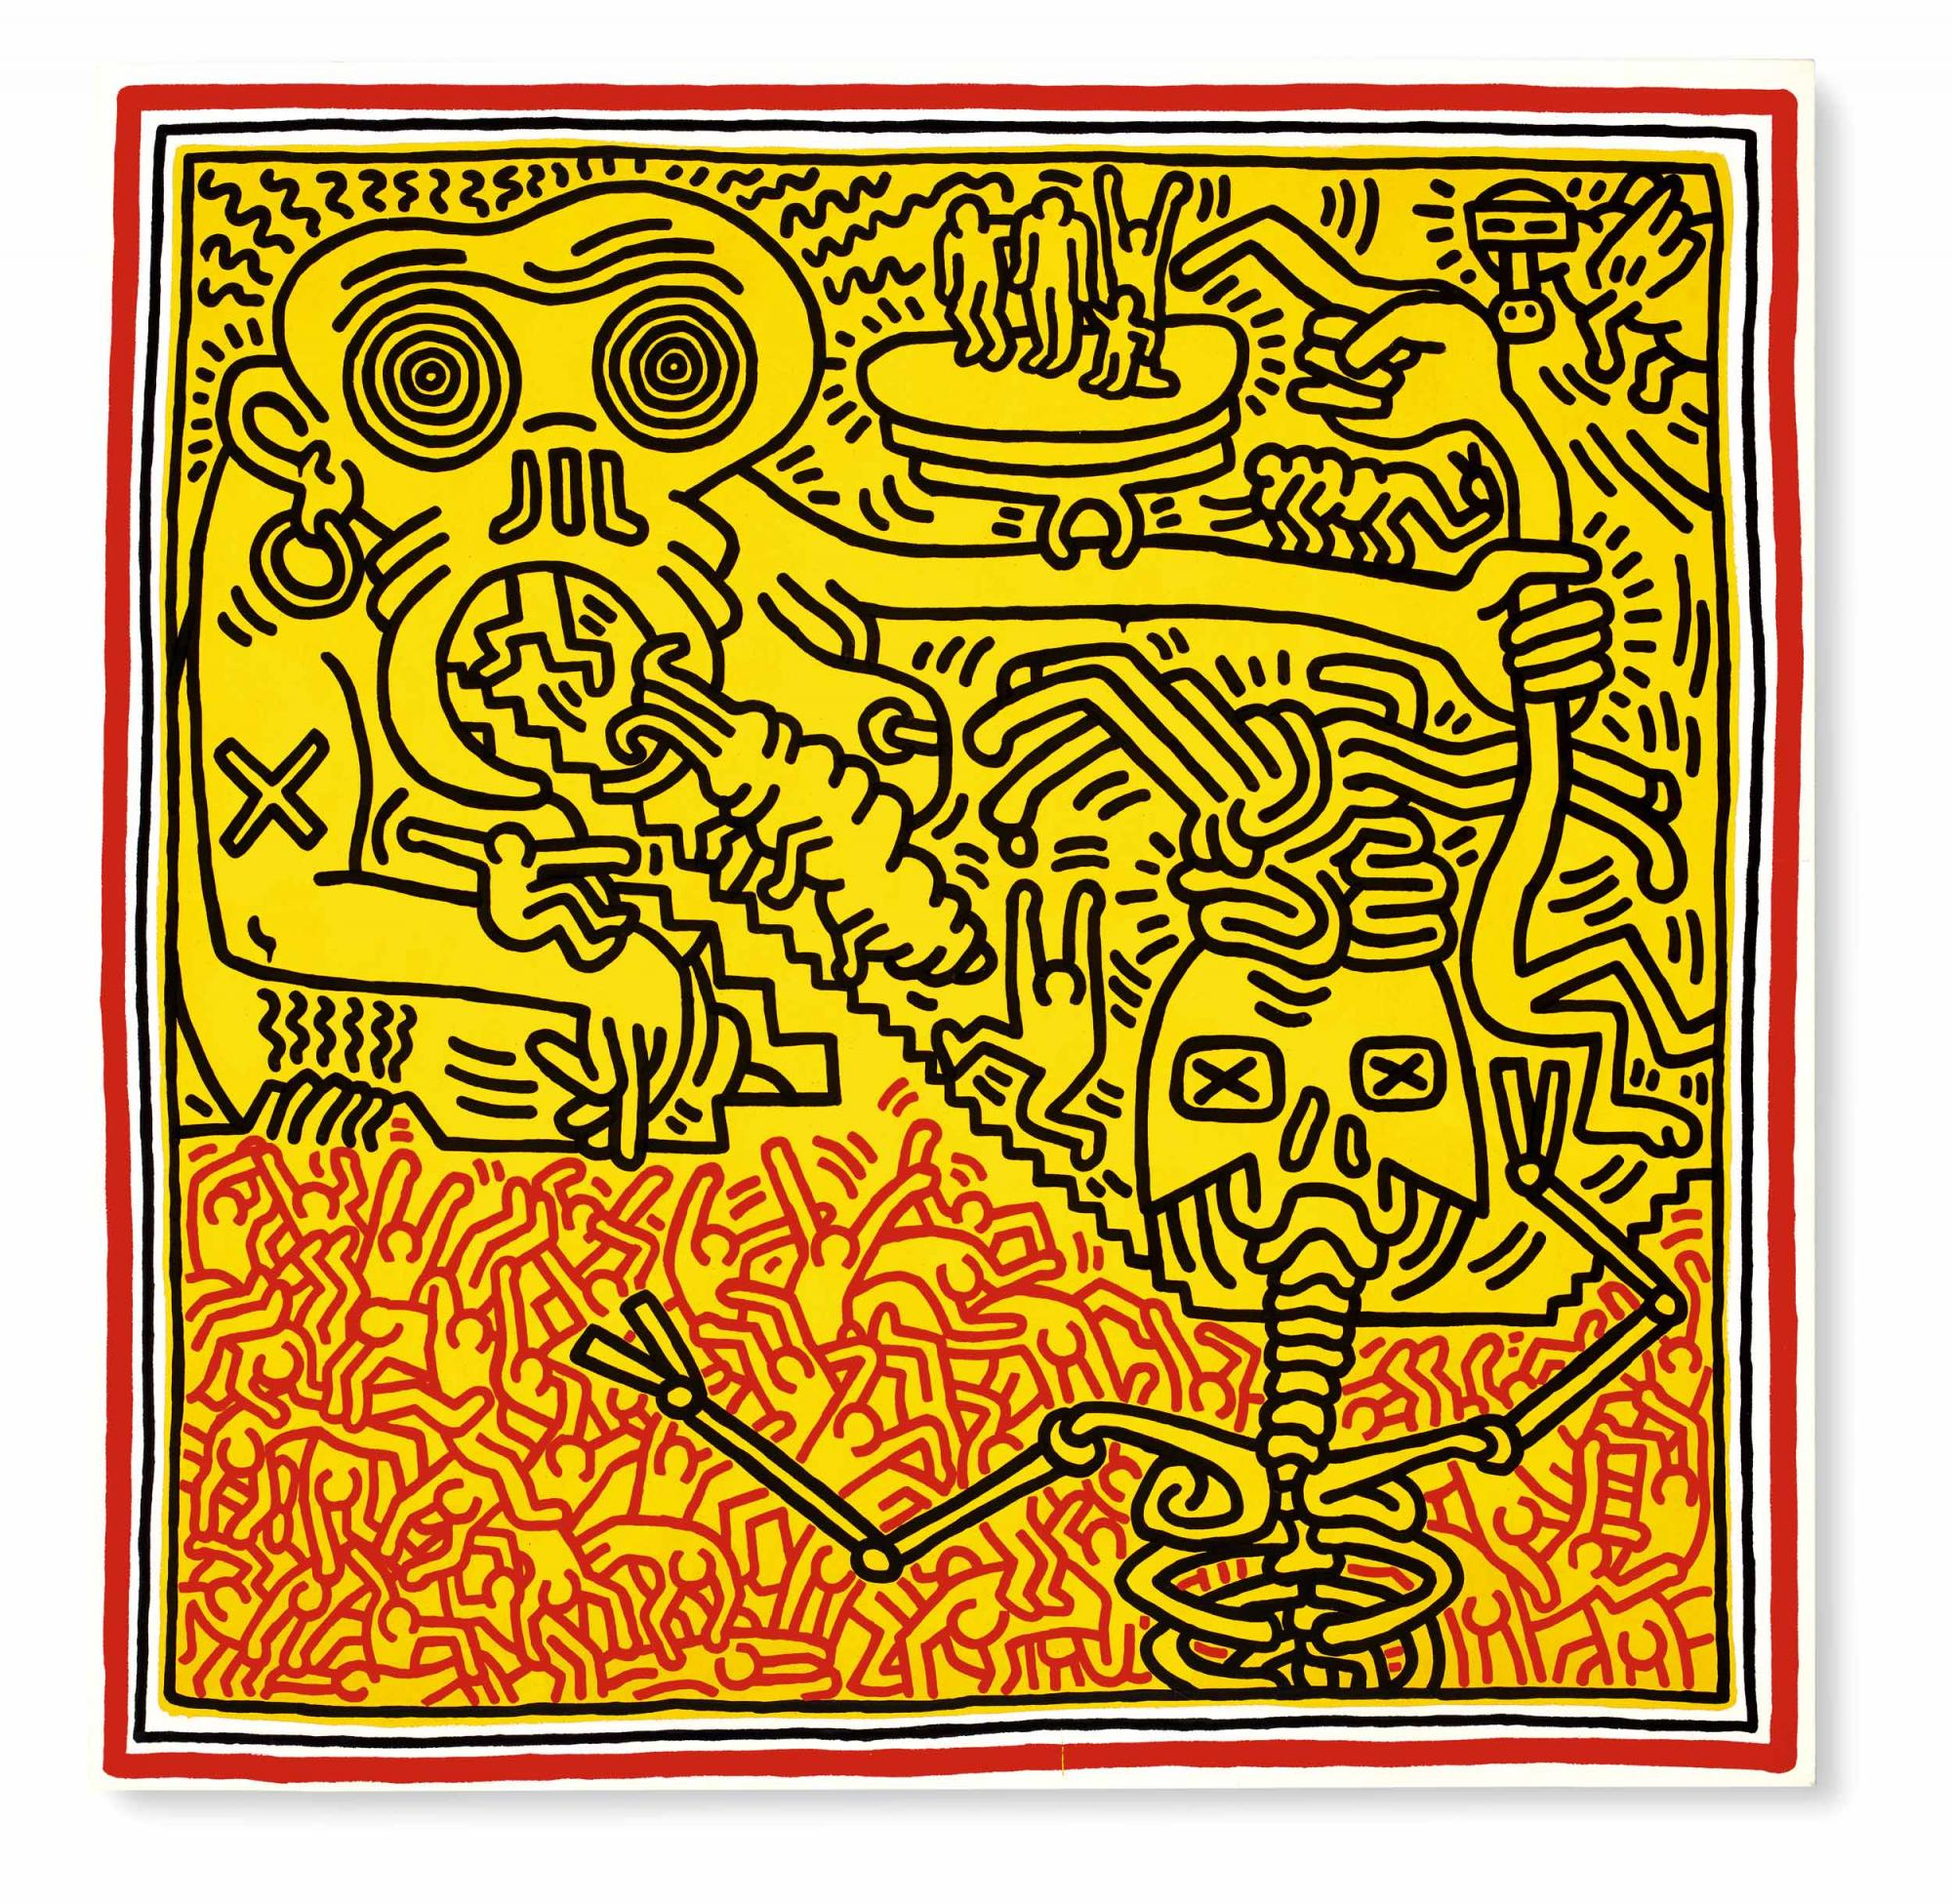 Lot-24-Keith-Haring-Untitled.jpg